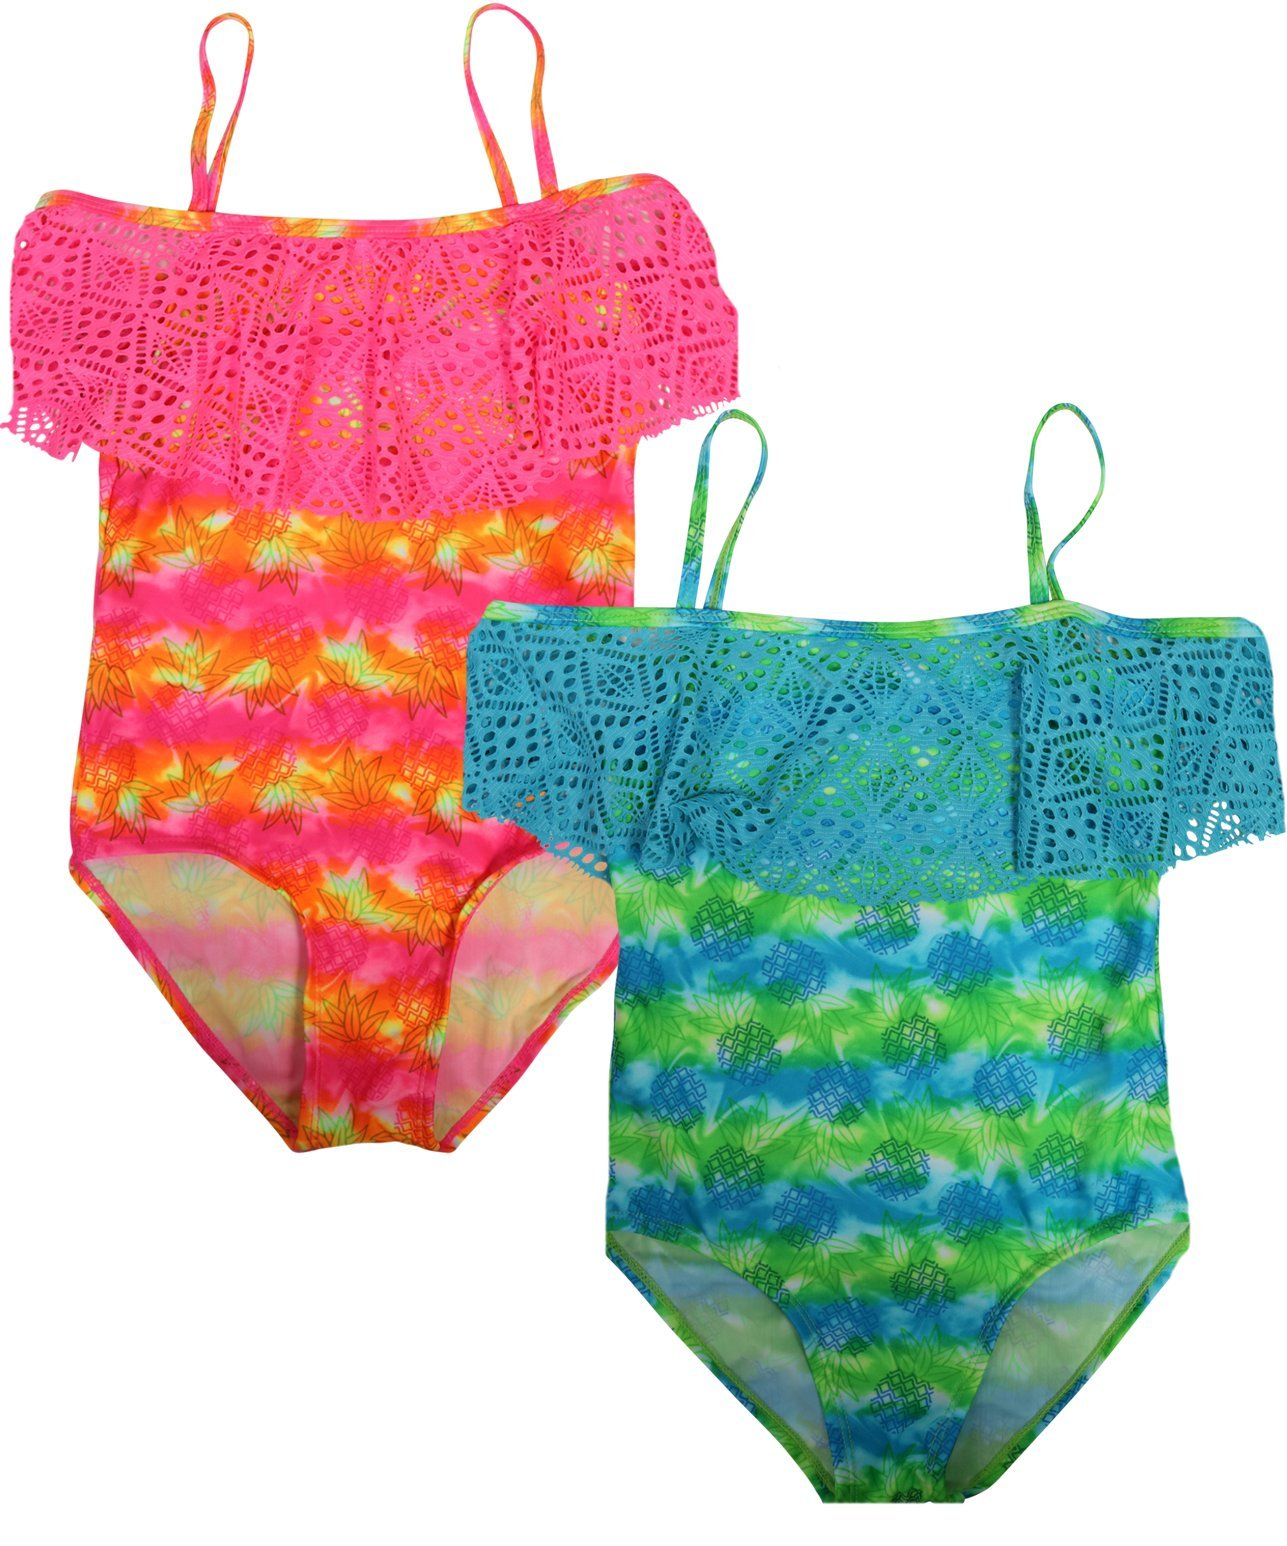 Real Love Girls' 2-Pack One Piece Swimsuit (Little Girls/Big Girls), Pineapple, Size 6X'